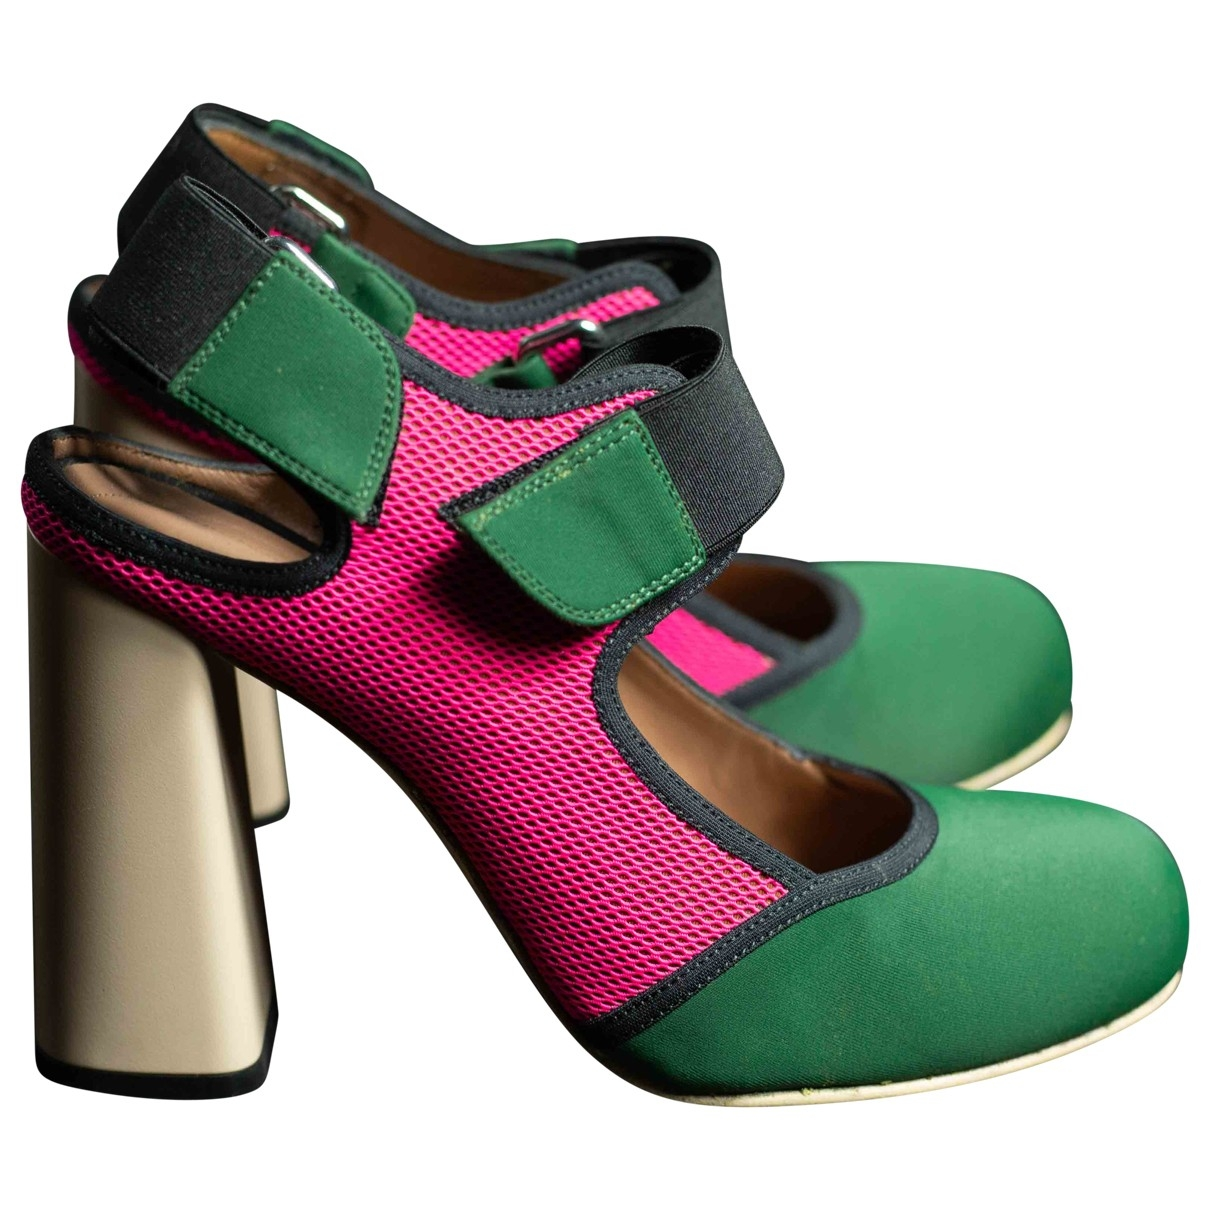 Marni \N Pumps in Leder